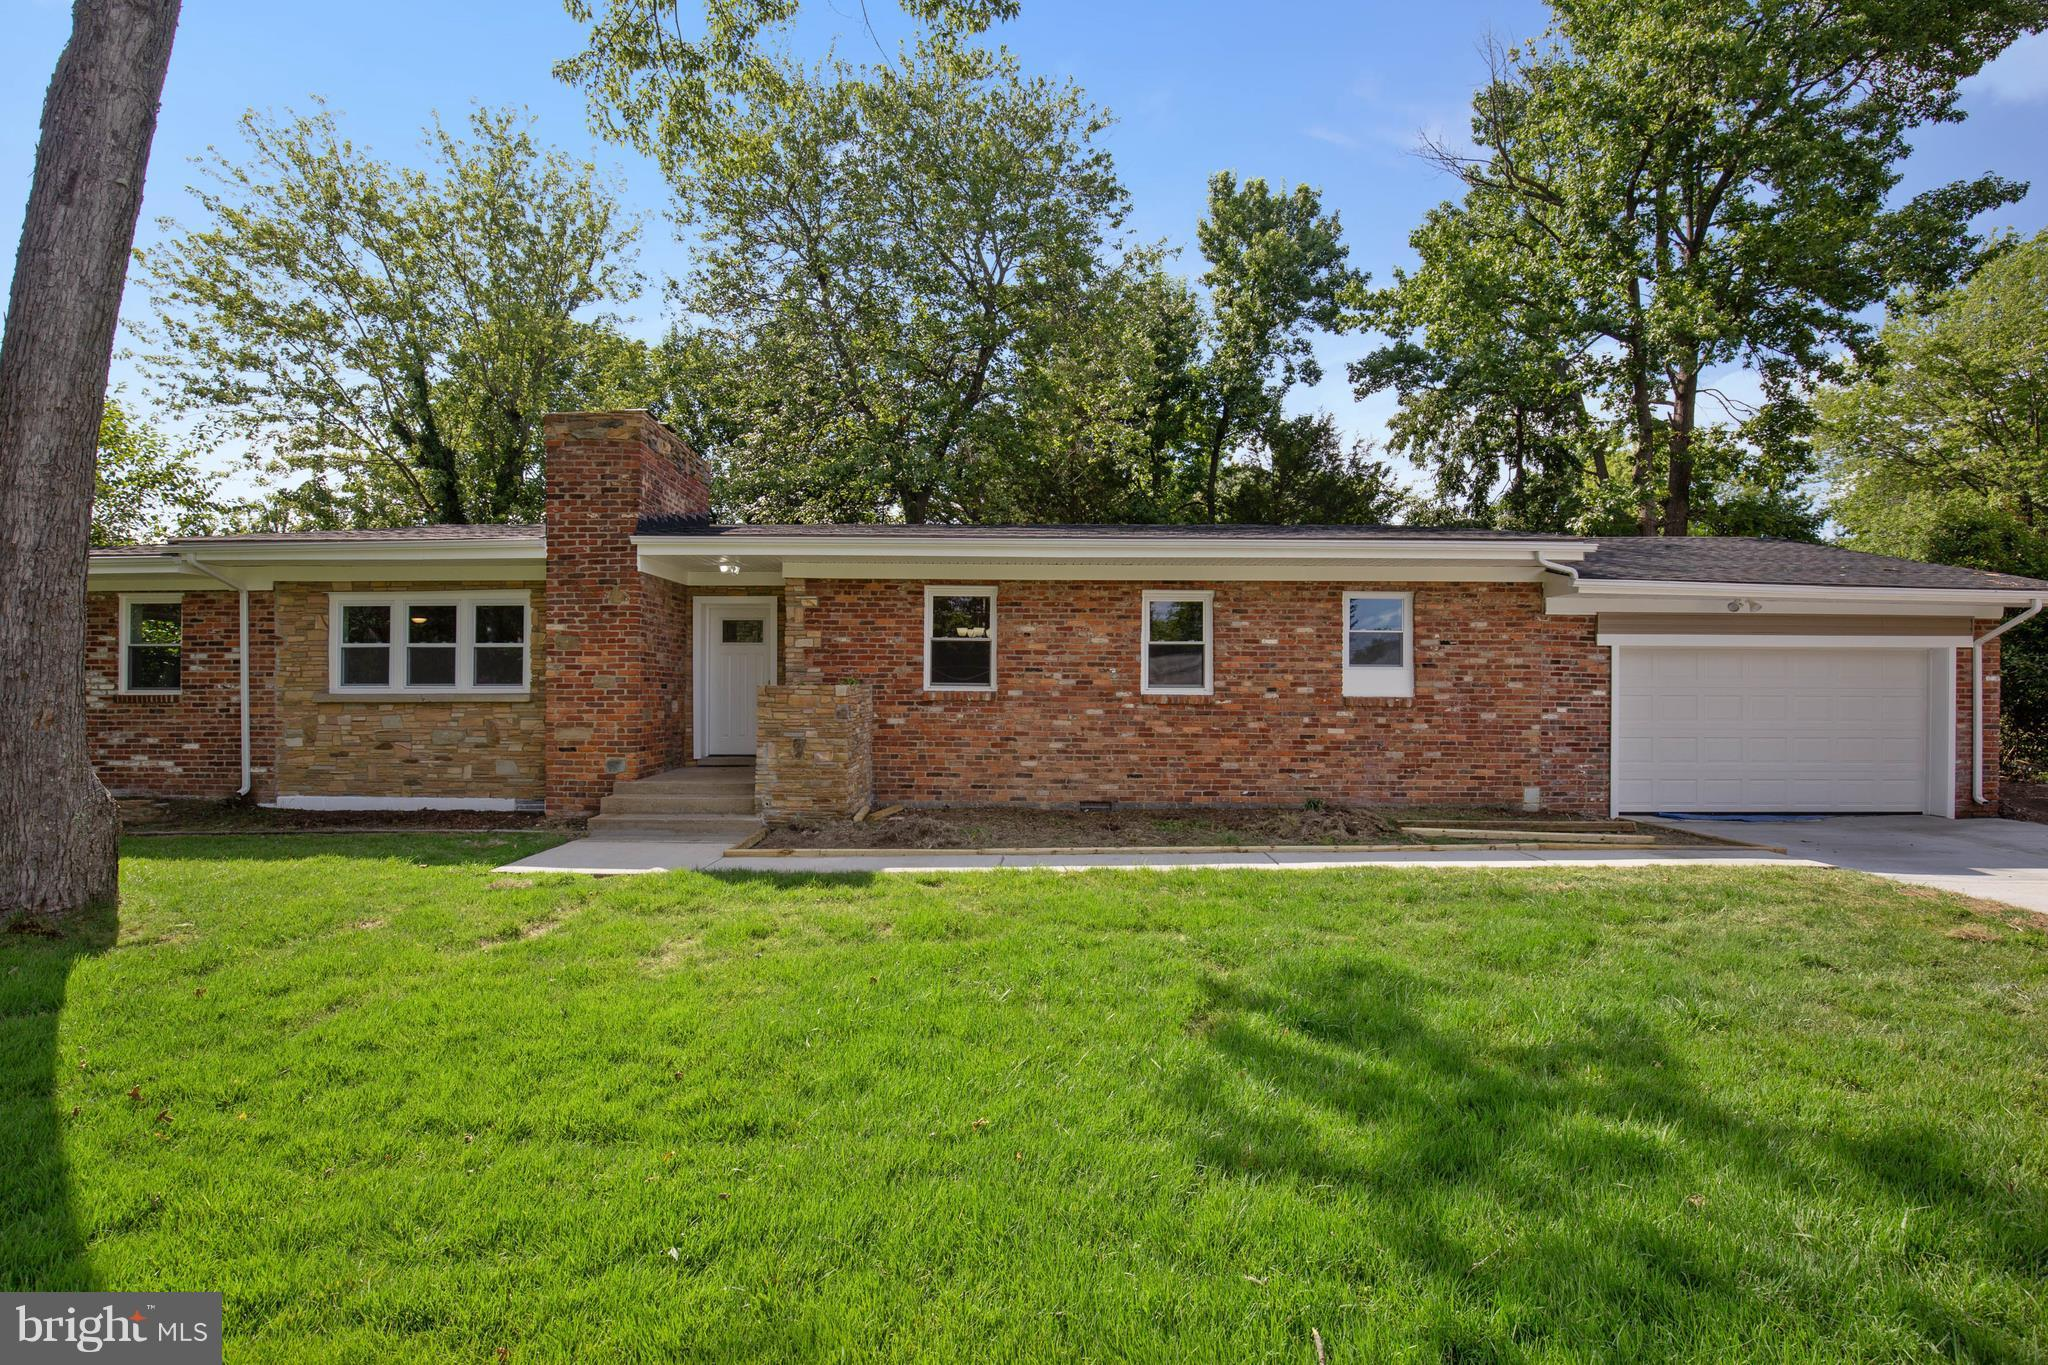 Fully Renovated. 2 Car Garage, New Appliances, New Carpet, Remodeled Kitchen and Bathroom. Much Desired Area of Alexandria.